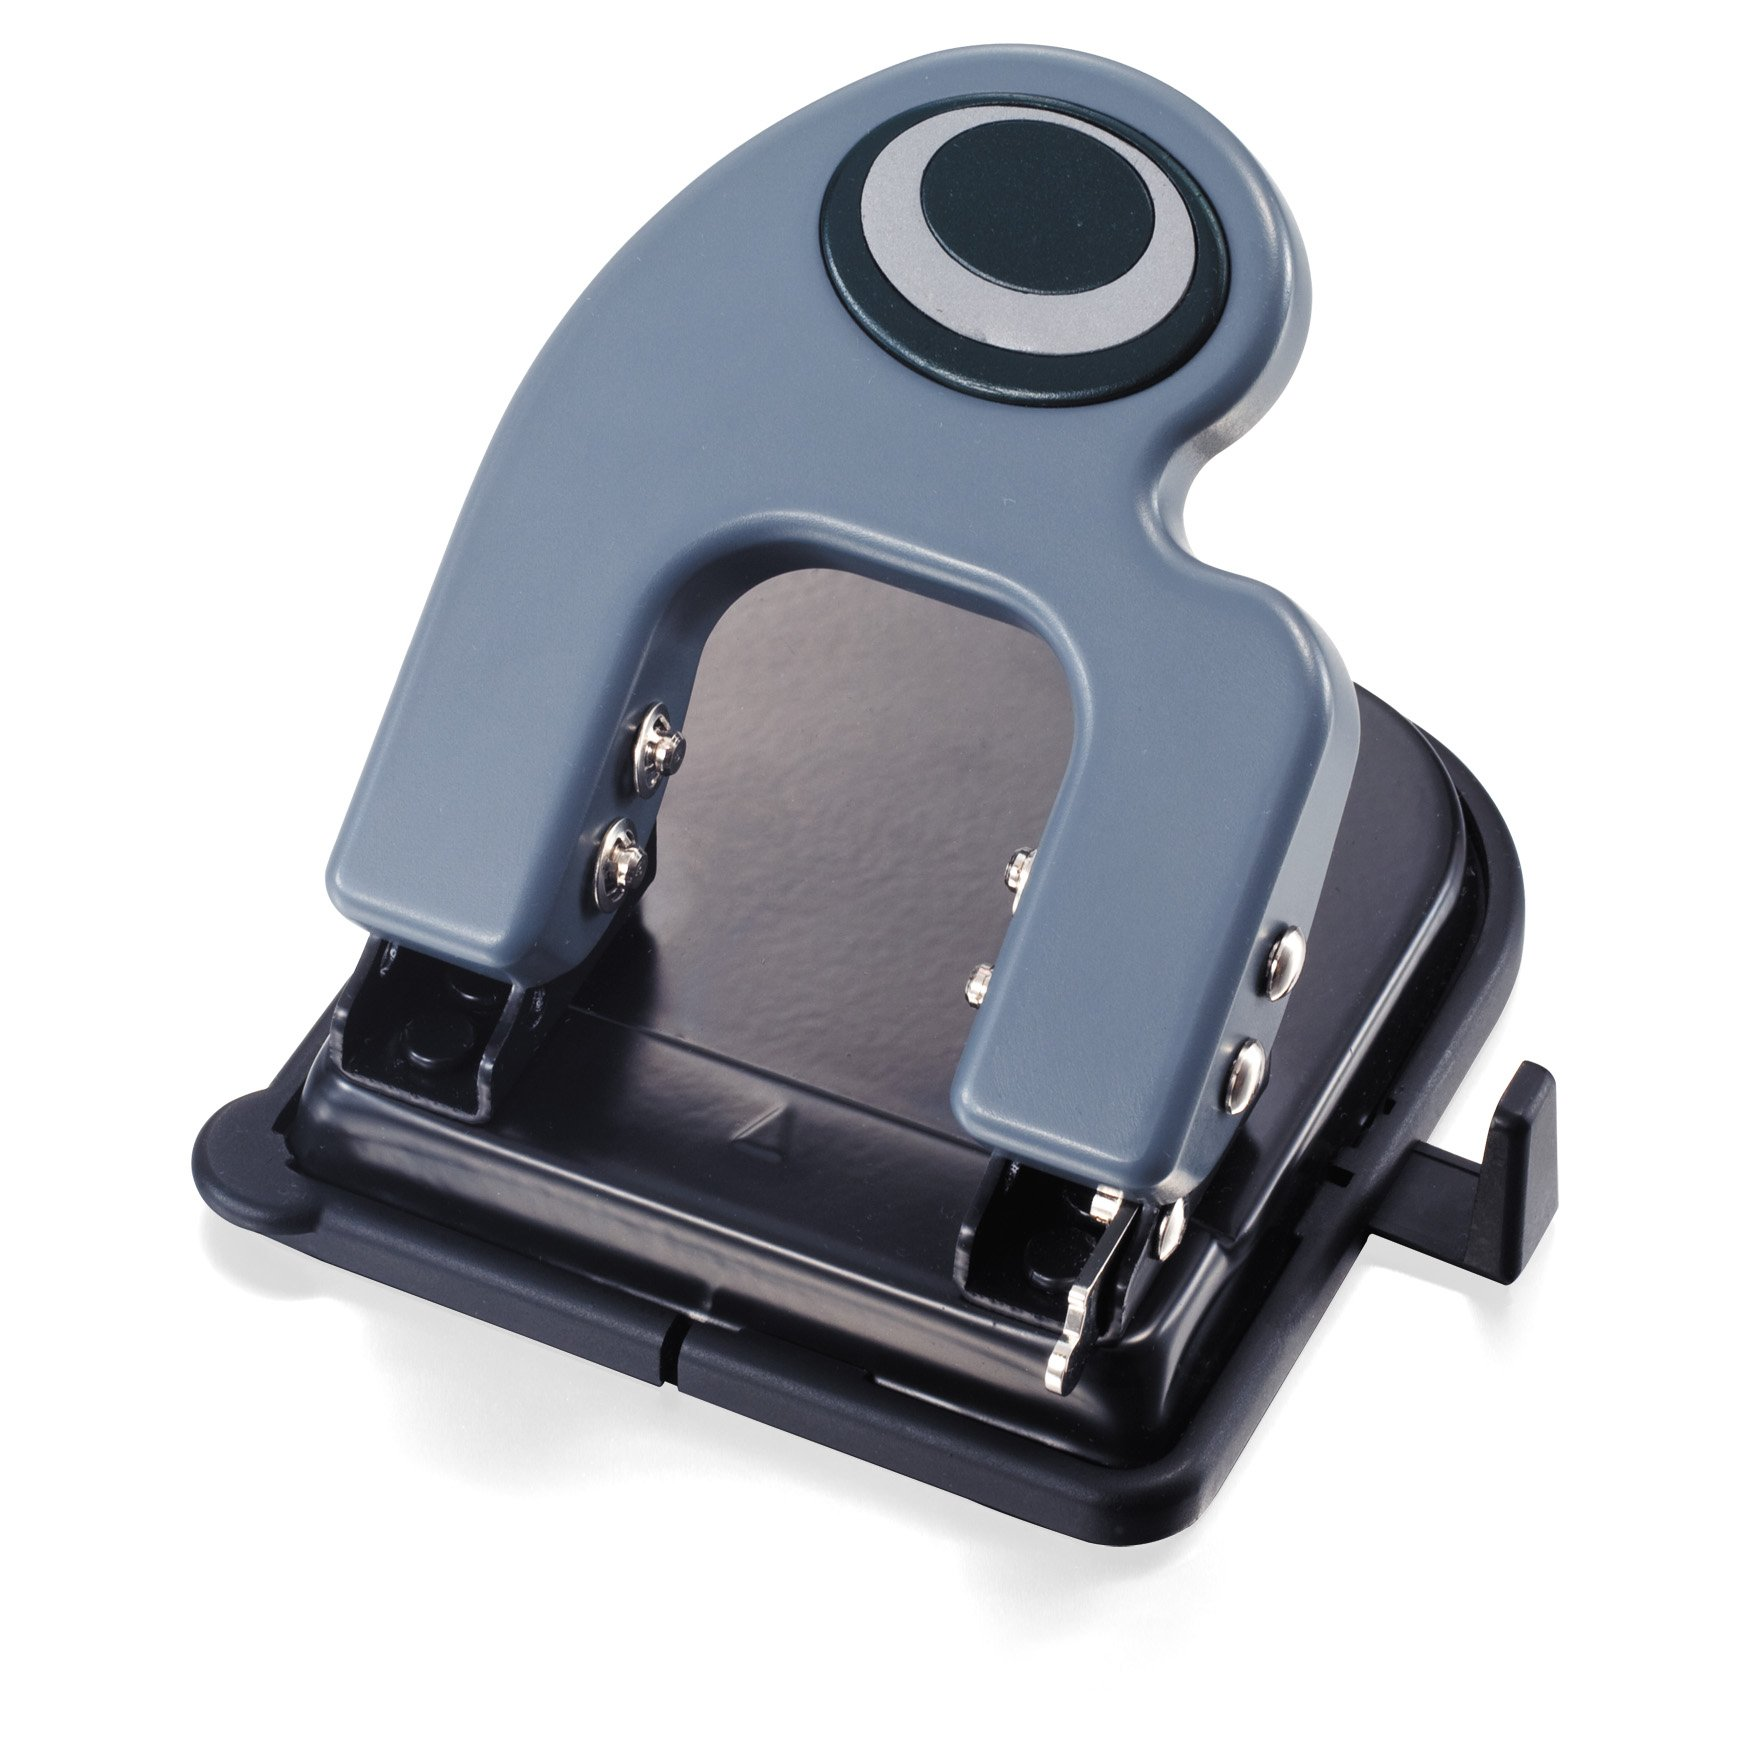 Officemate Contemporary 2-Hole Eco-Punch, 25 Sheet Capacity, Recycled, Antimicrobial, Black/Gray/Green (90134)